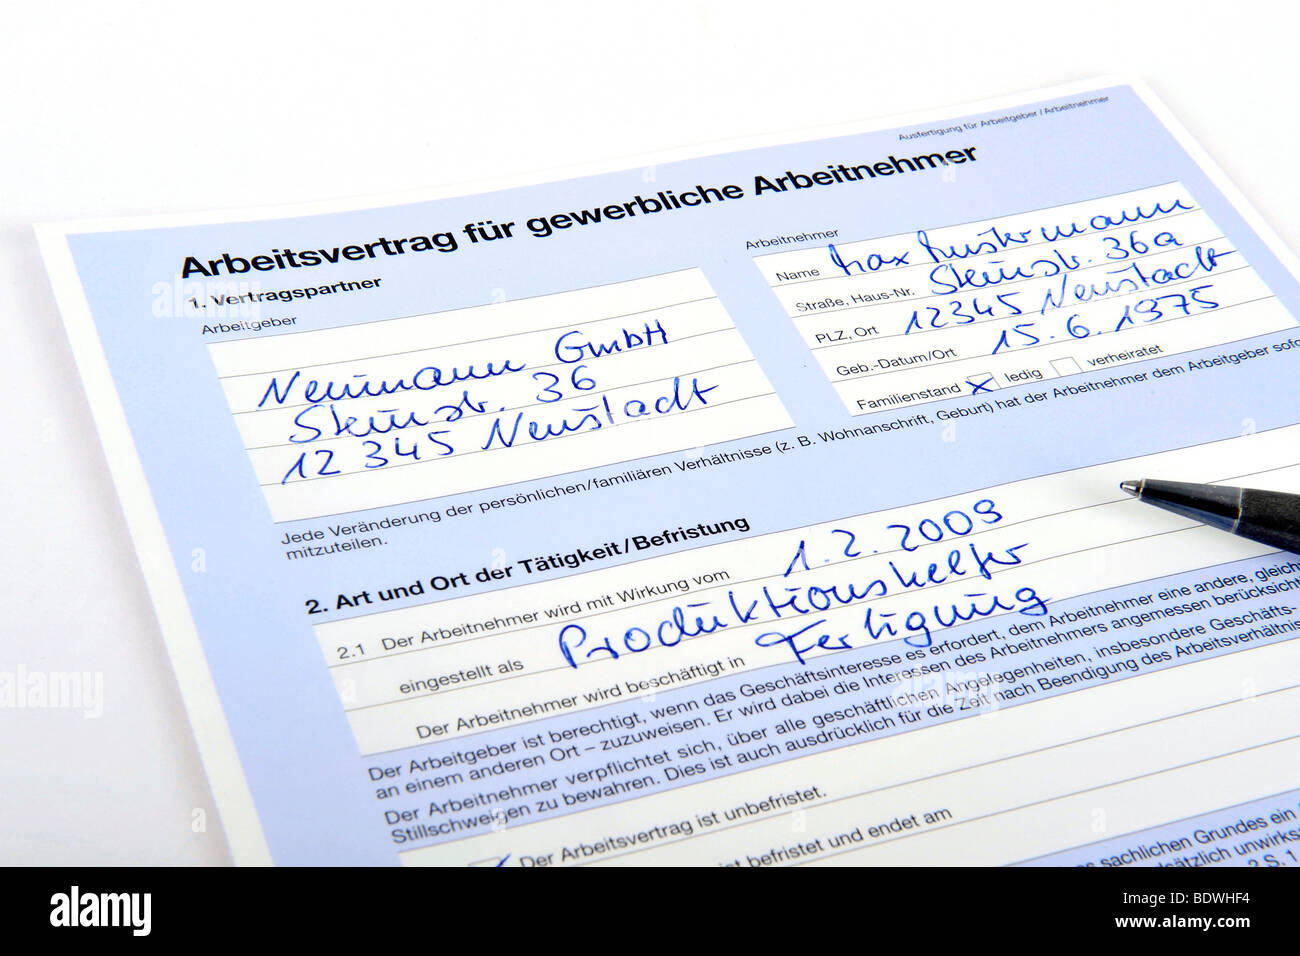 Contract of employment for industrial employees Stock Photo